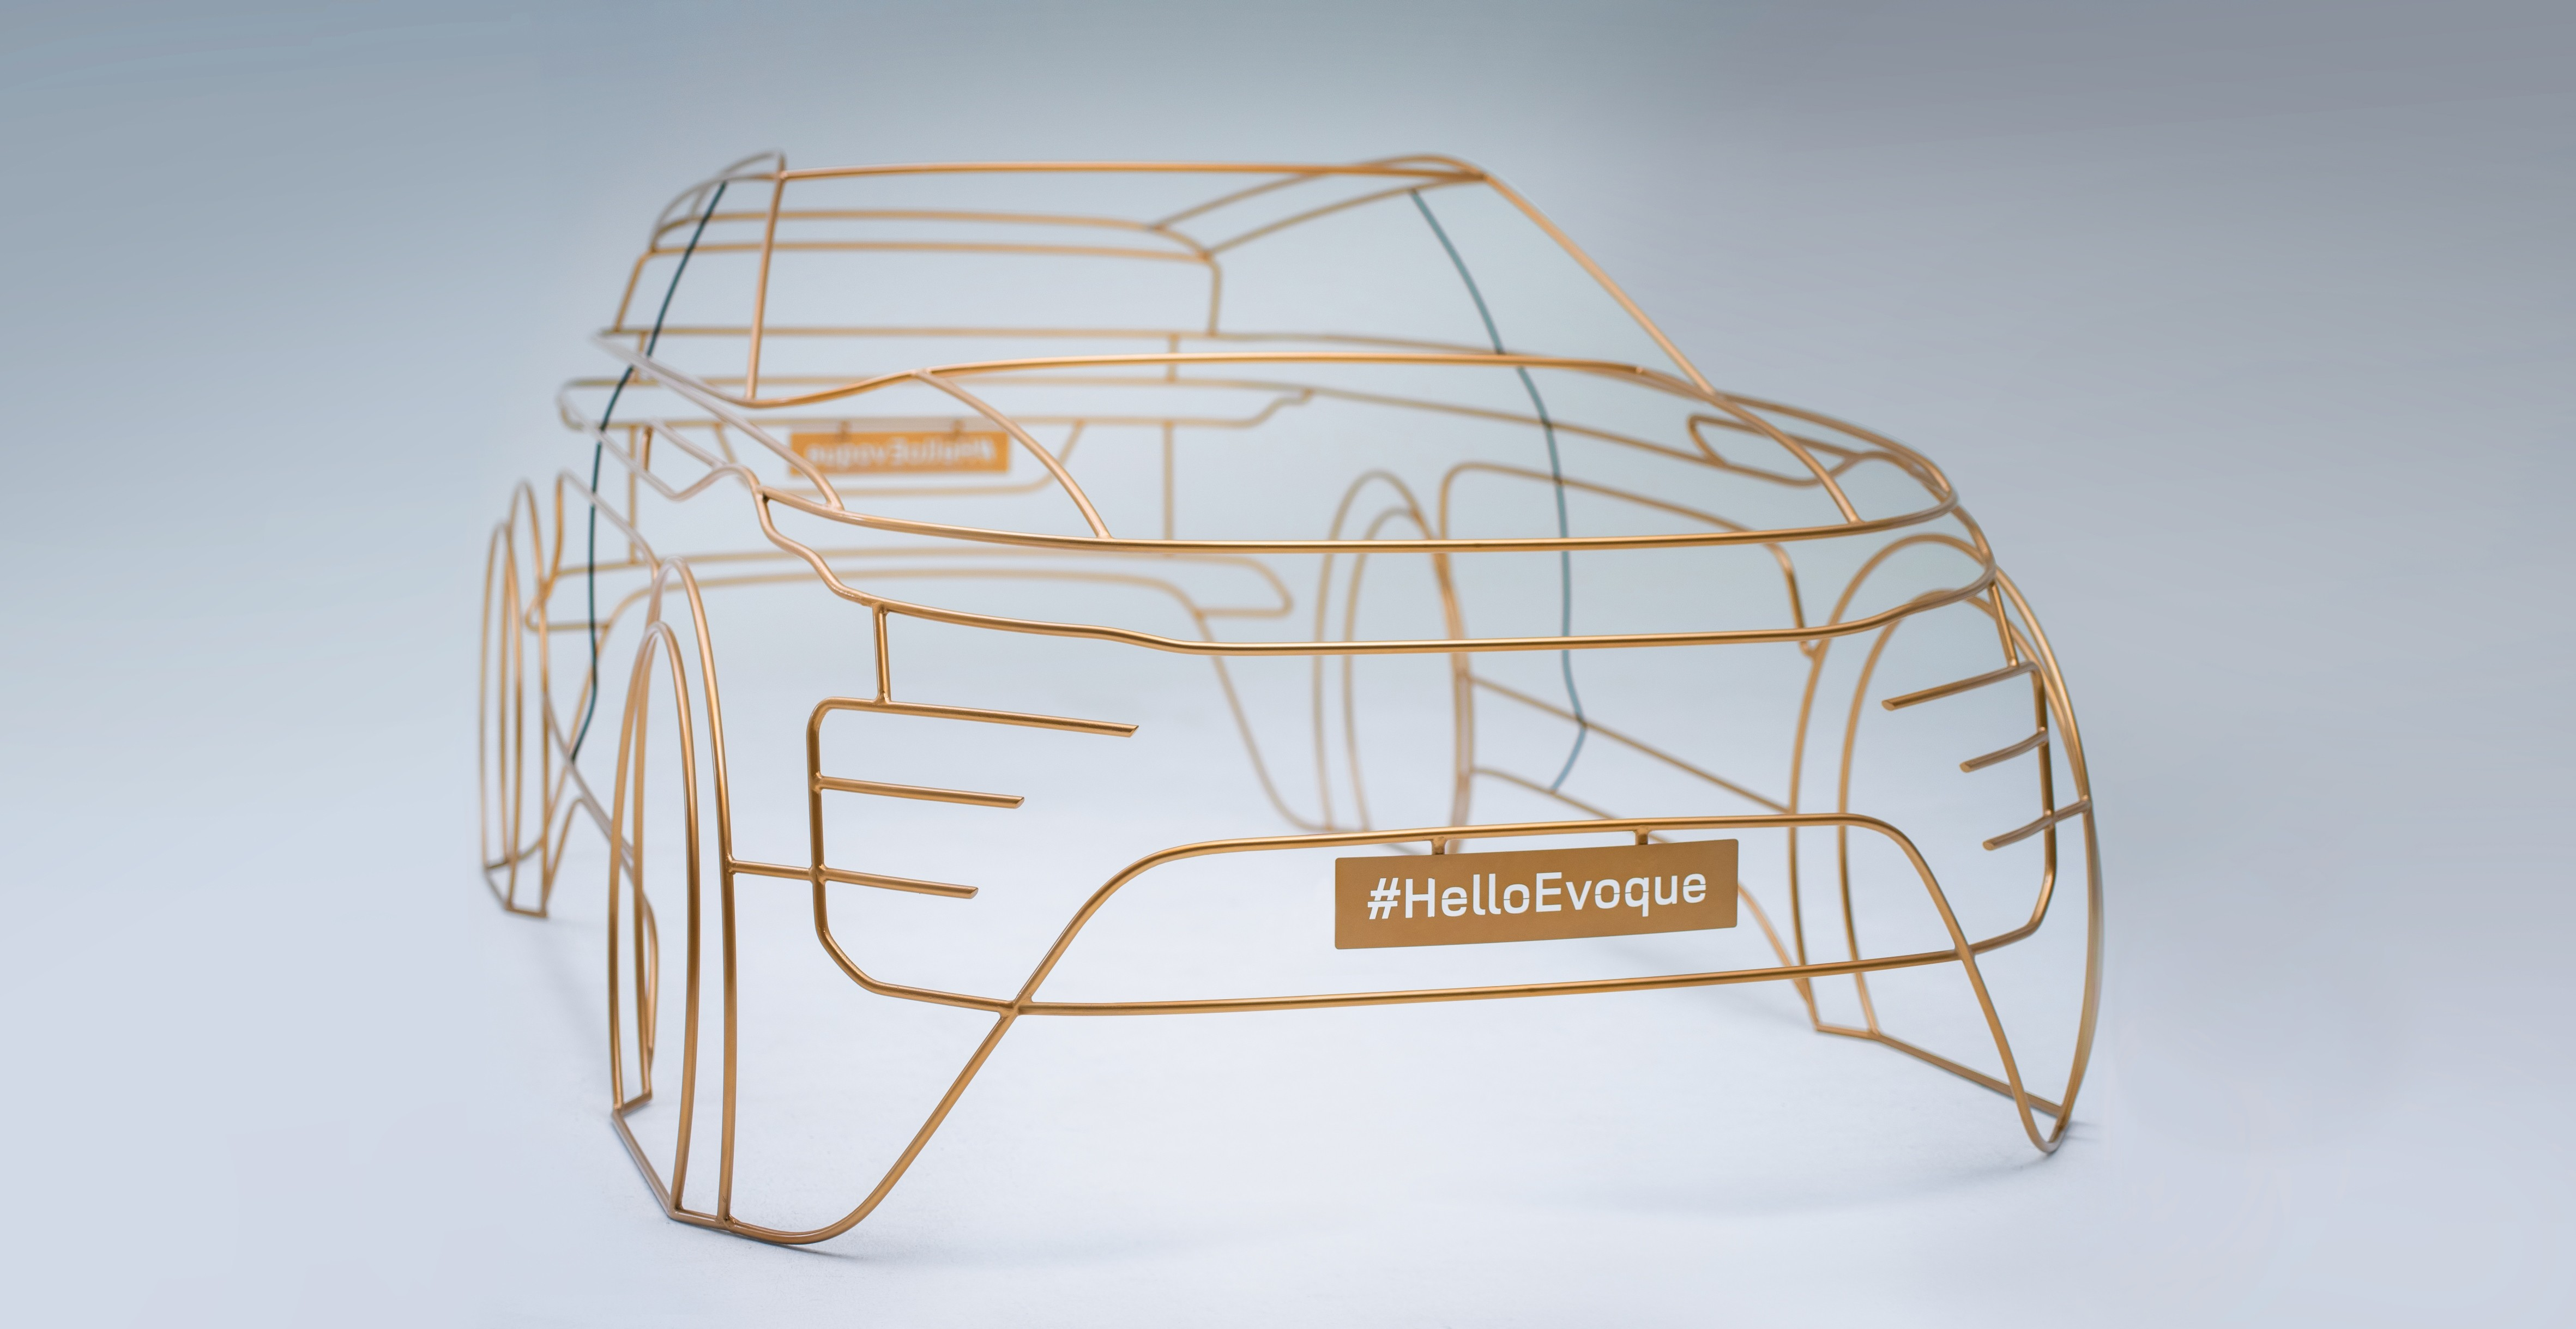 Range Rover Evoque teased